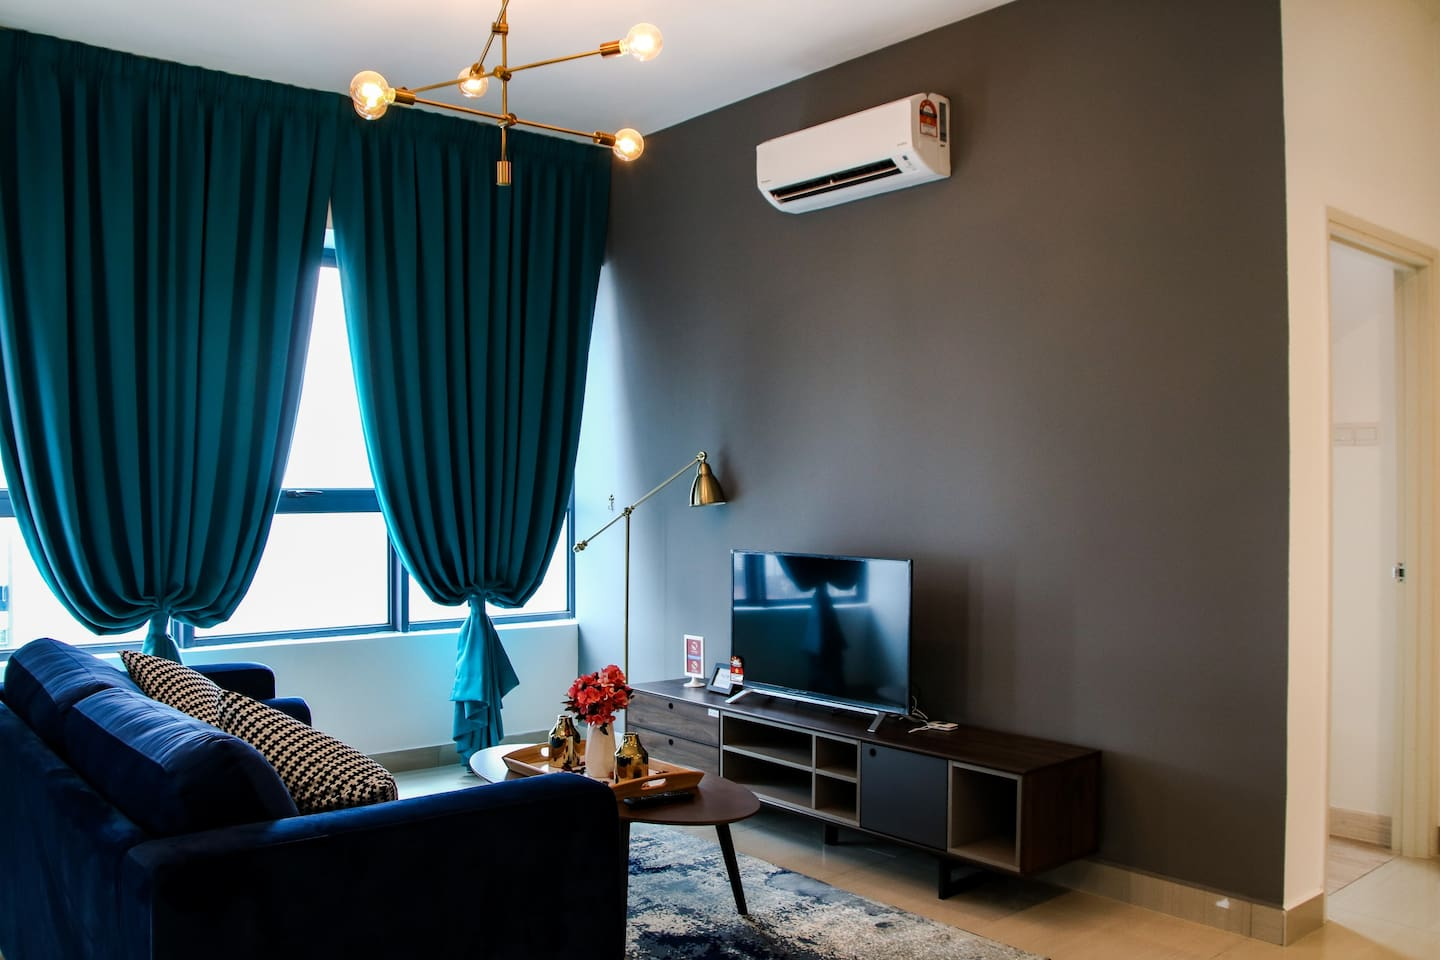 A very homey apartment located in the heart of Kuala Lumpur, along Jalan Ampang.